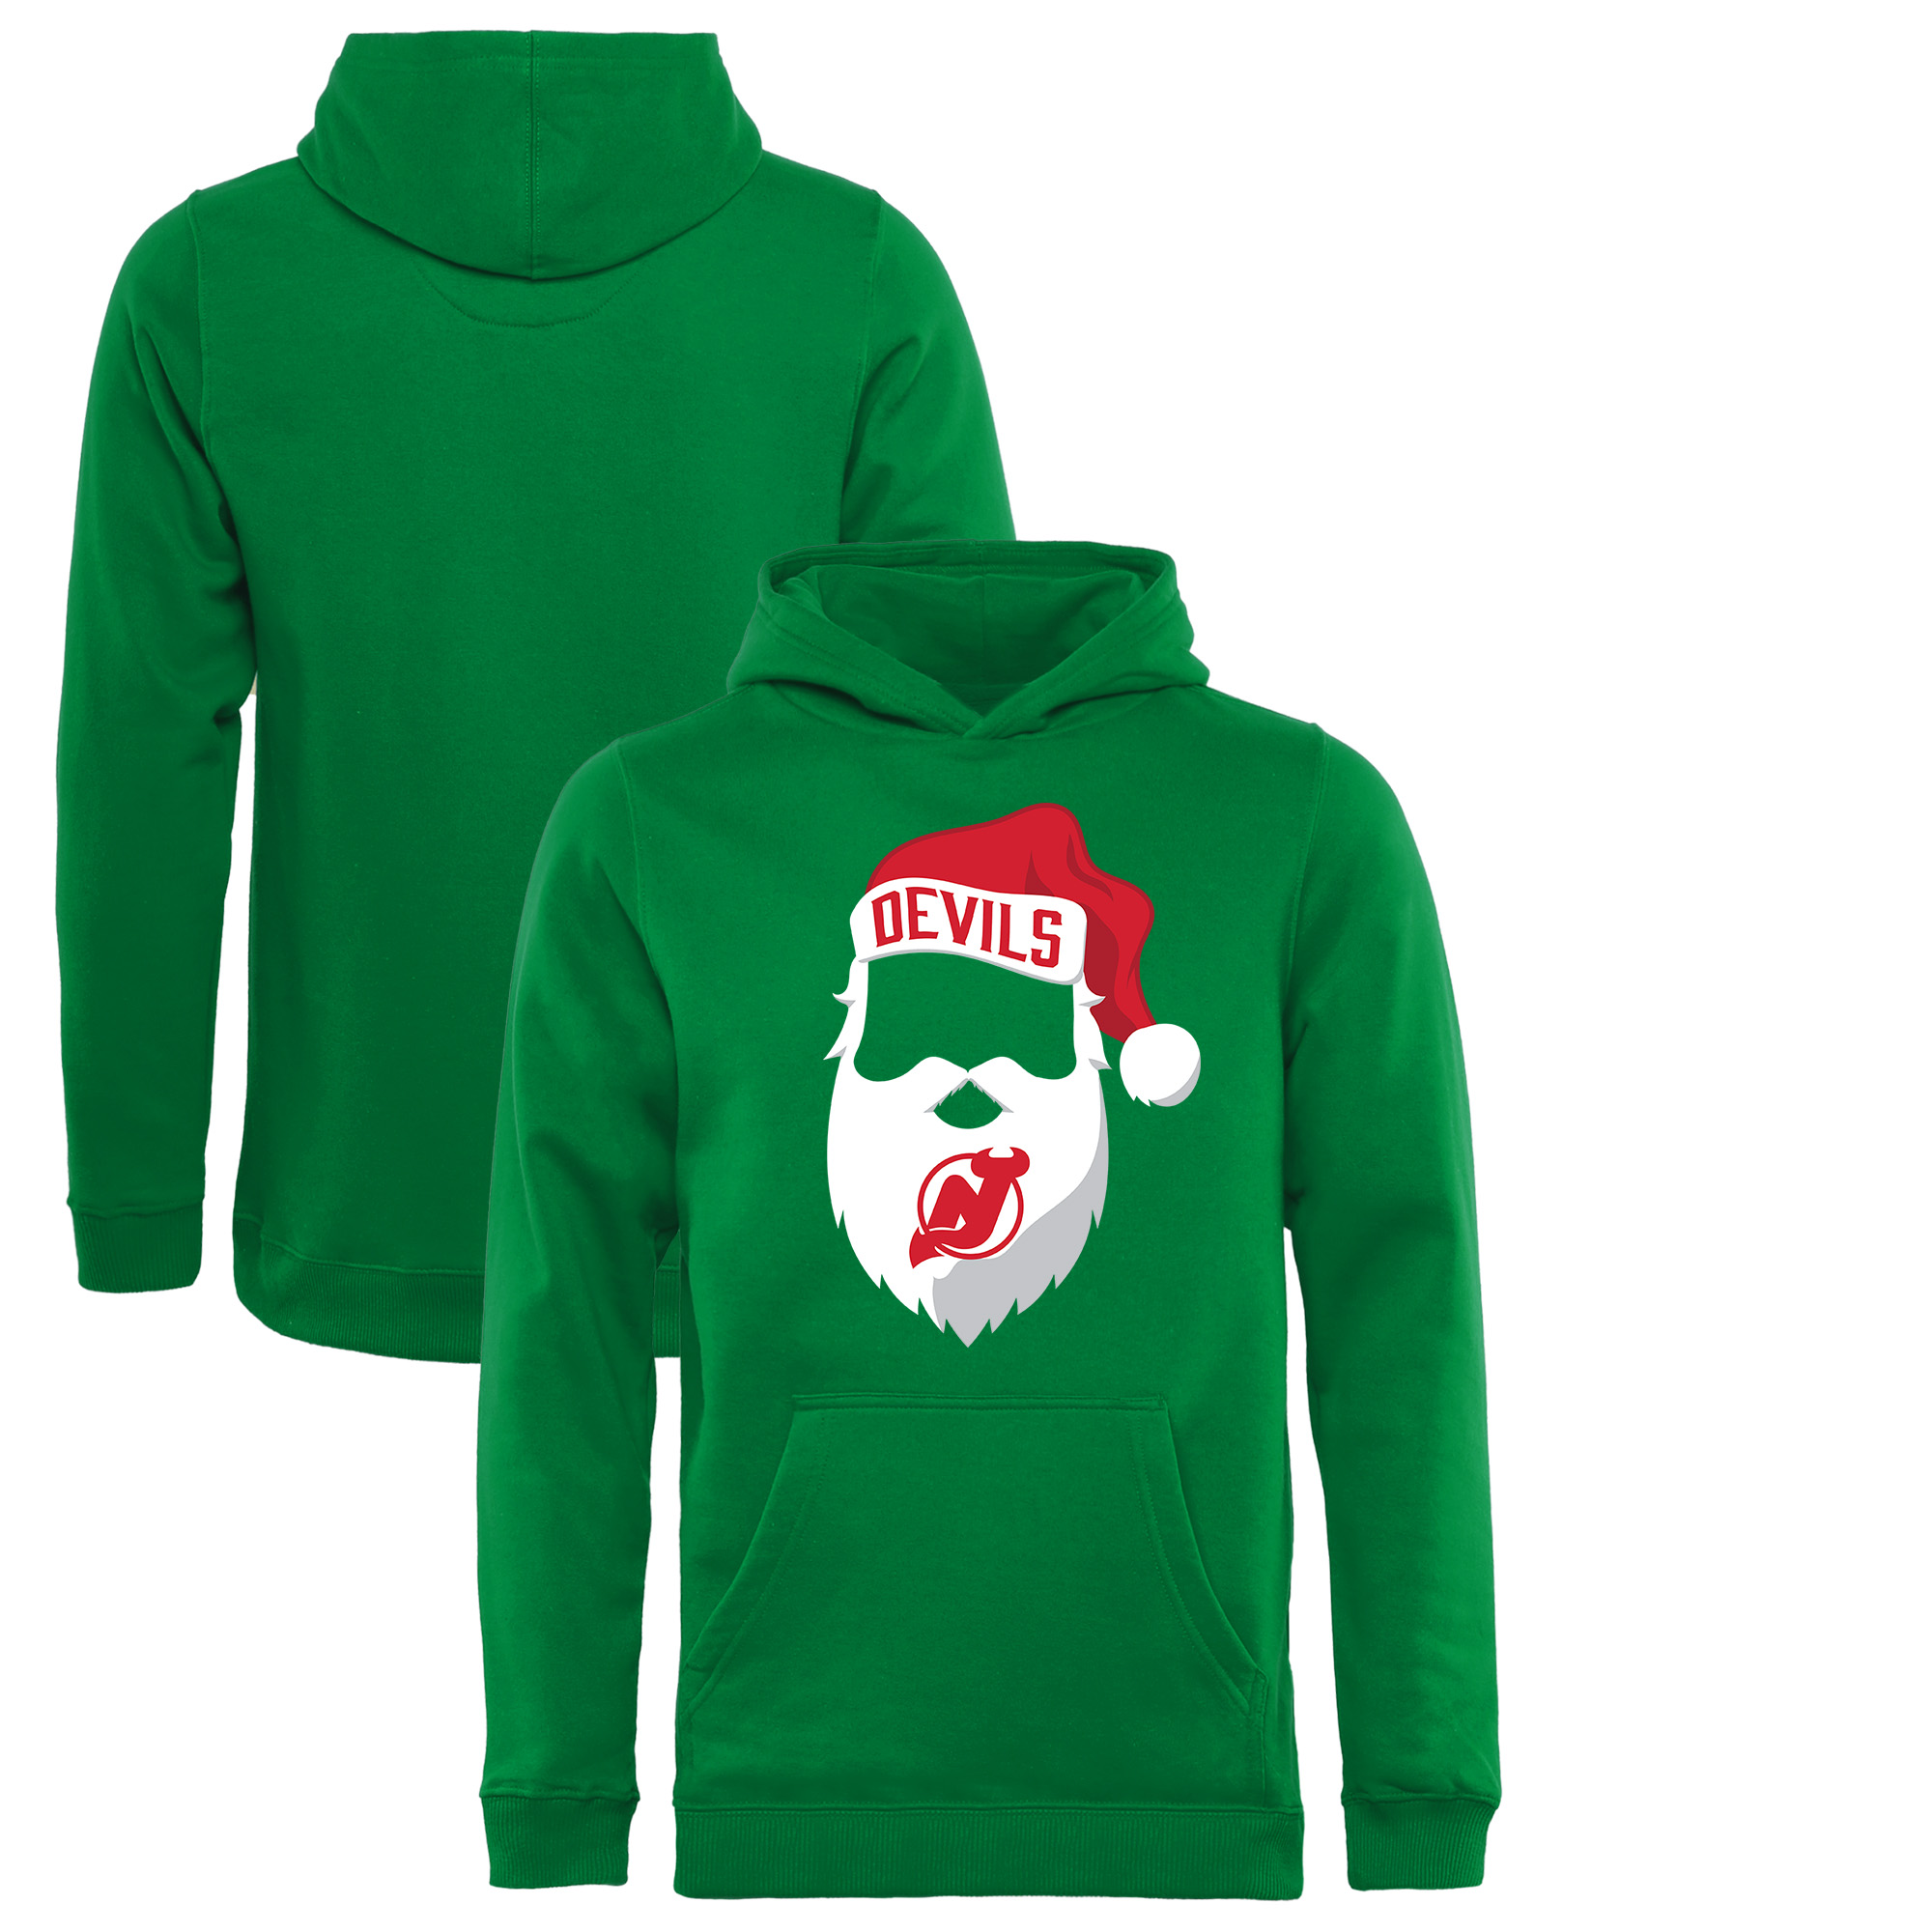 New Jersey Devils Fanatics Branded Youth Jolly Pullover Hoodie - Kelly Green